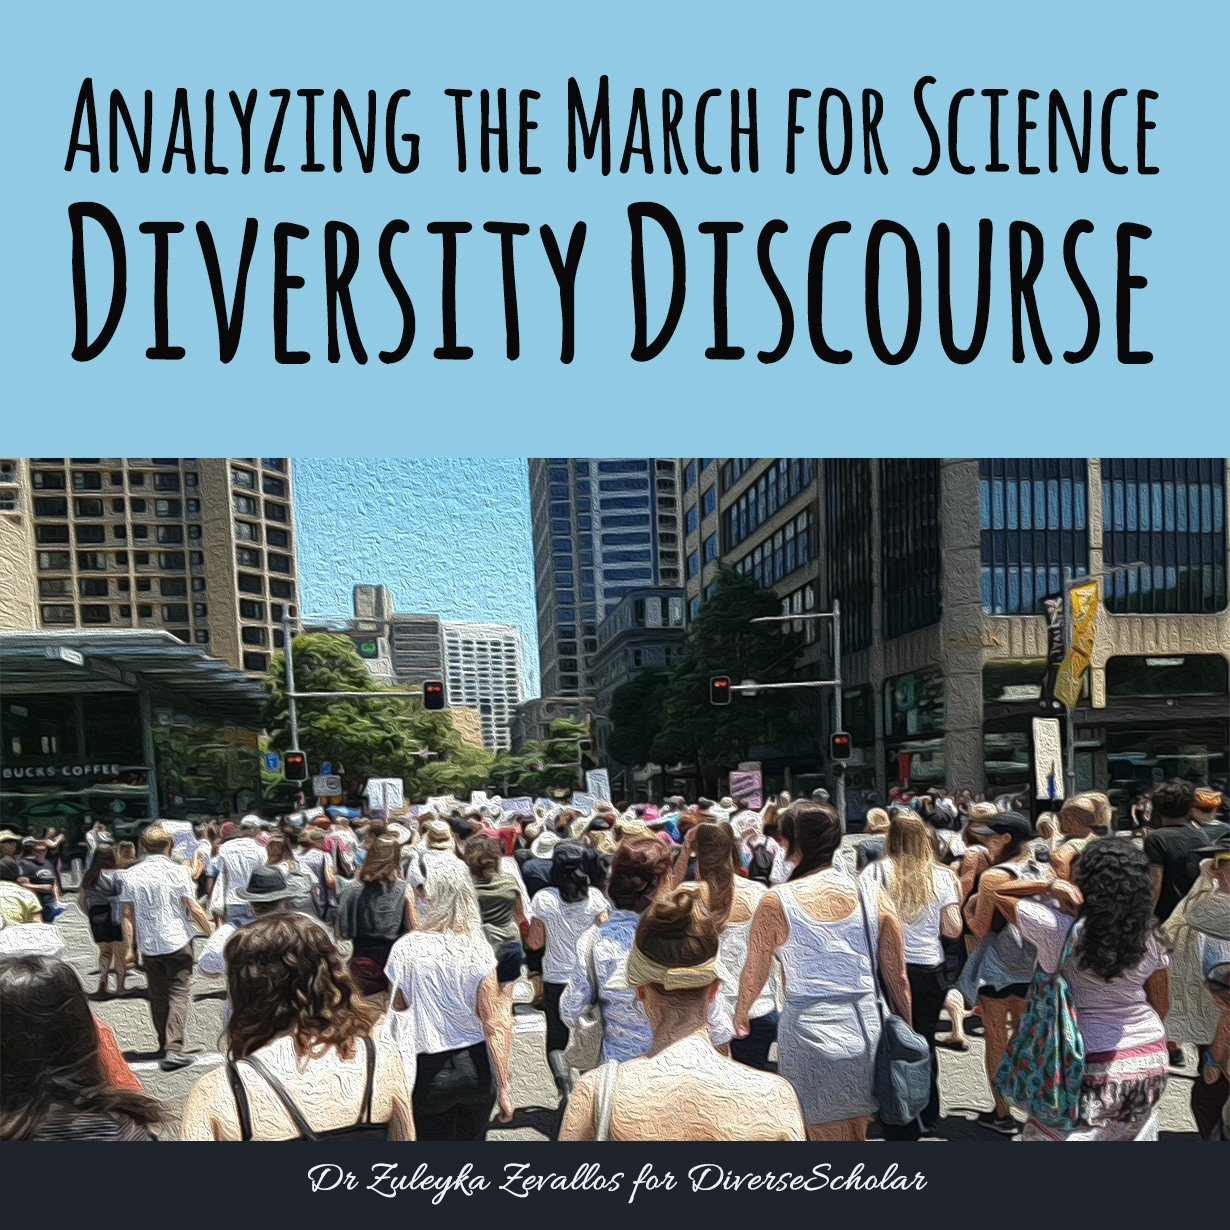 Analyzing the @ScienceMarchDC Diversity Discourse. Inclusion requires work. My latest on @MinorityPostdoc https://t.co/9vuPPSzJ5f #marginsci https://t.co/rRIoEk5YDv